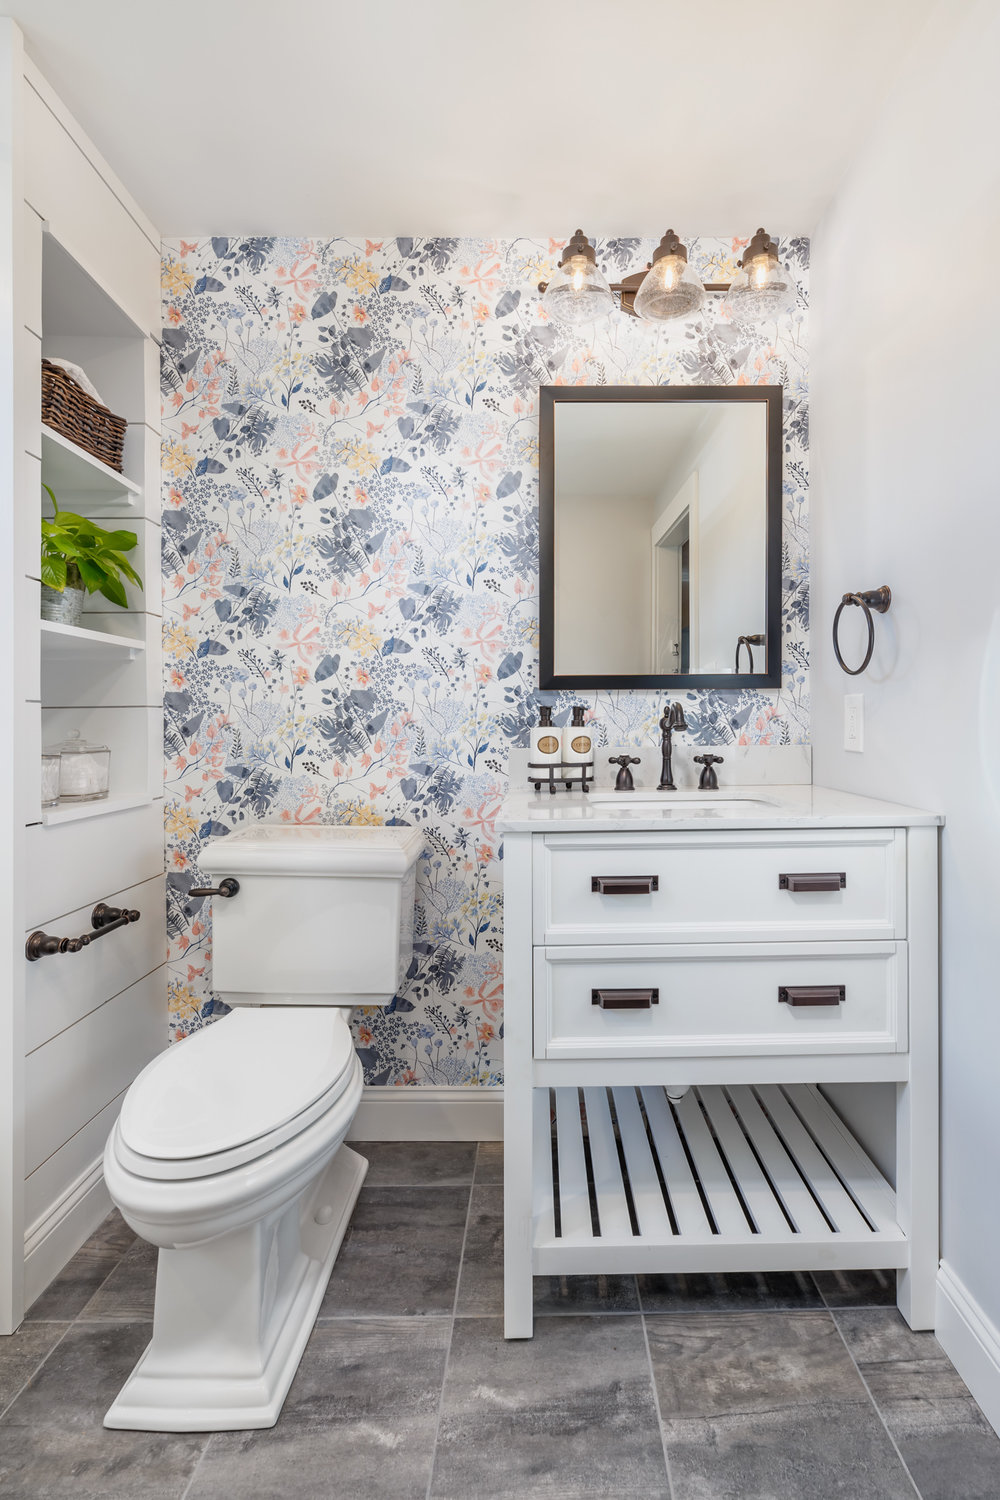 Vanity toilet and wallpaper.jpg